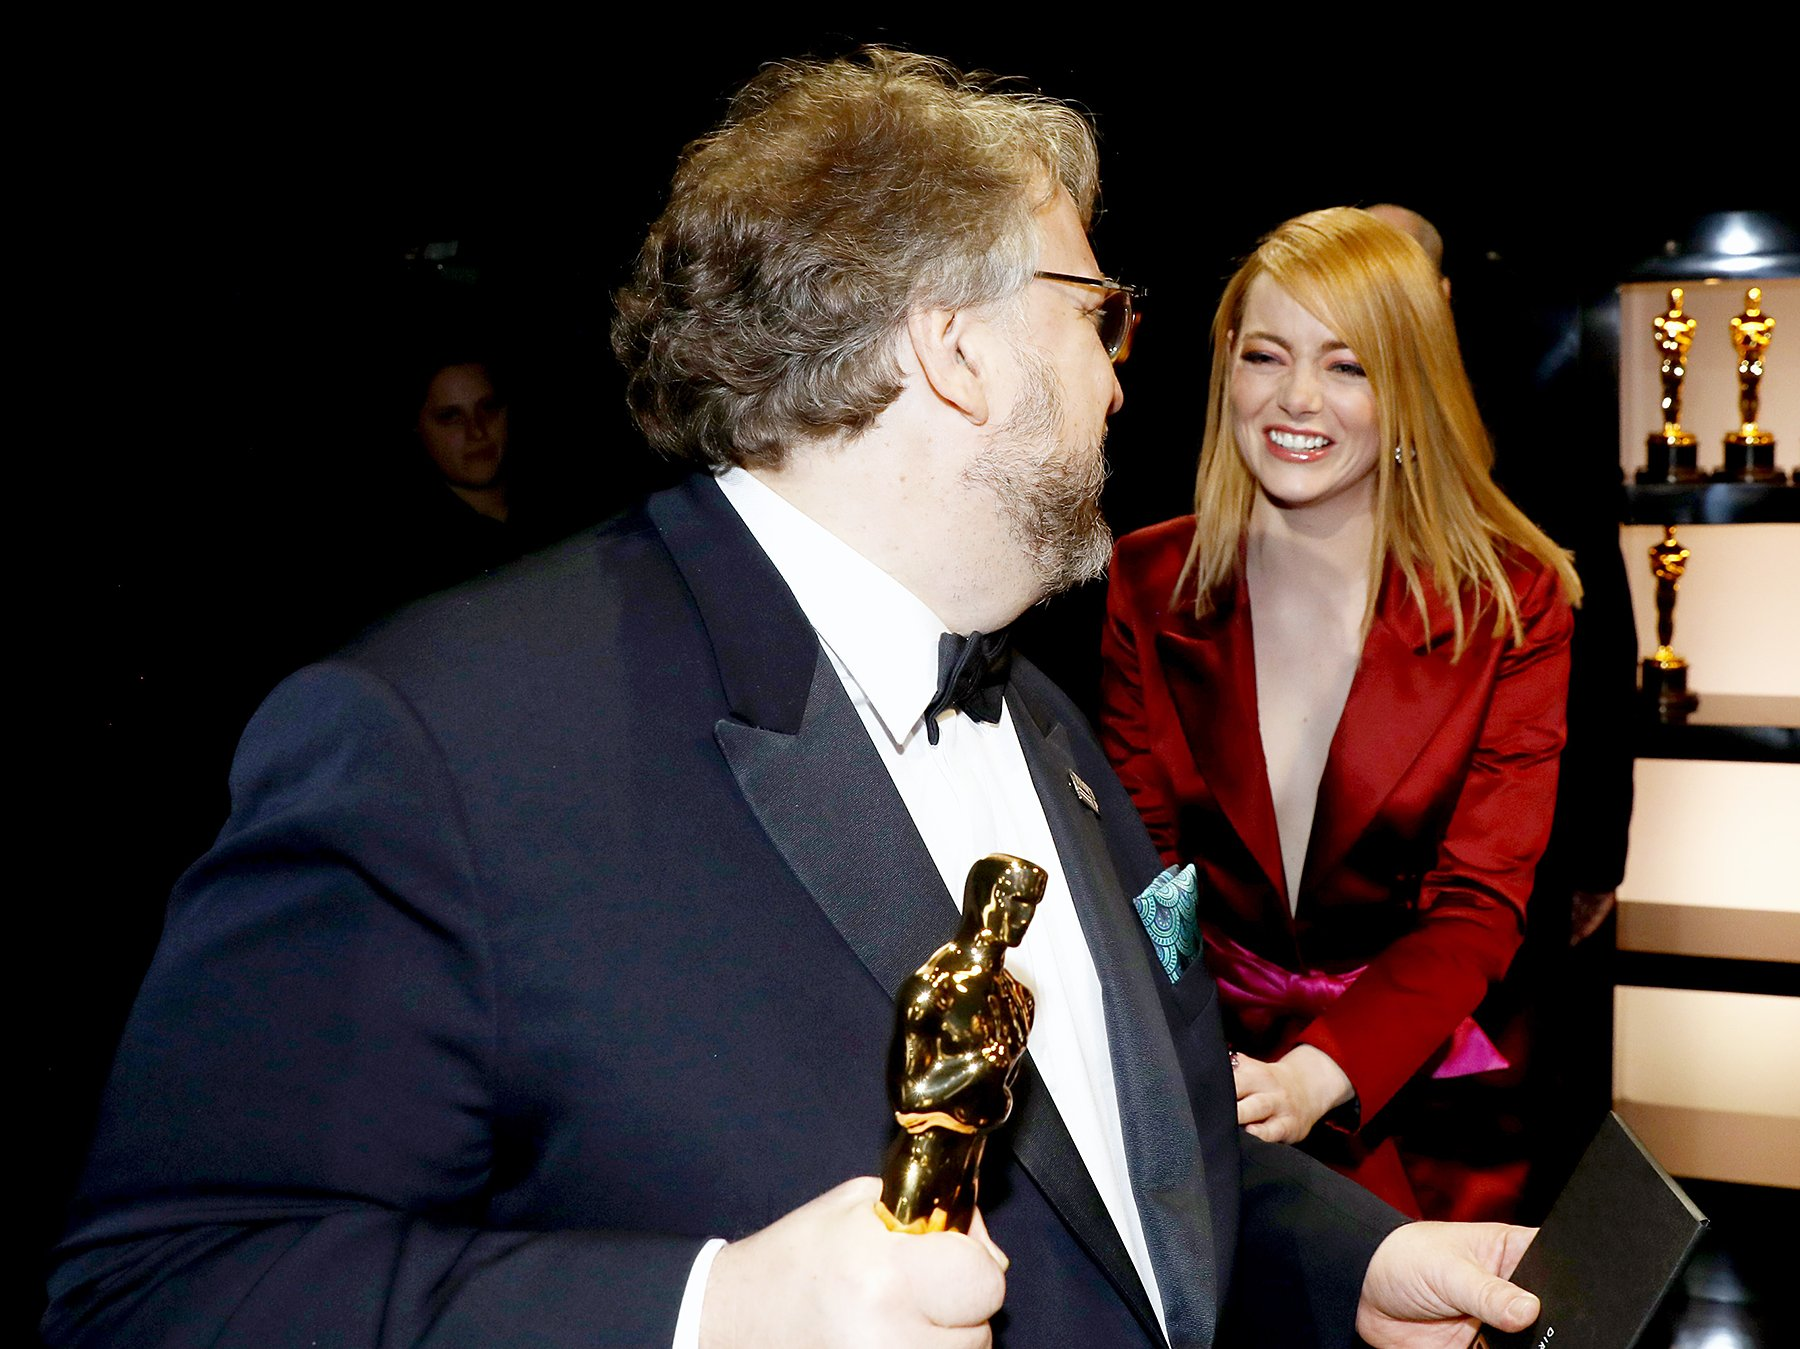 Happy birthday to the incredibly talented and wonderful inspiration, Guillermo Del Toro!